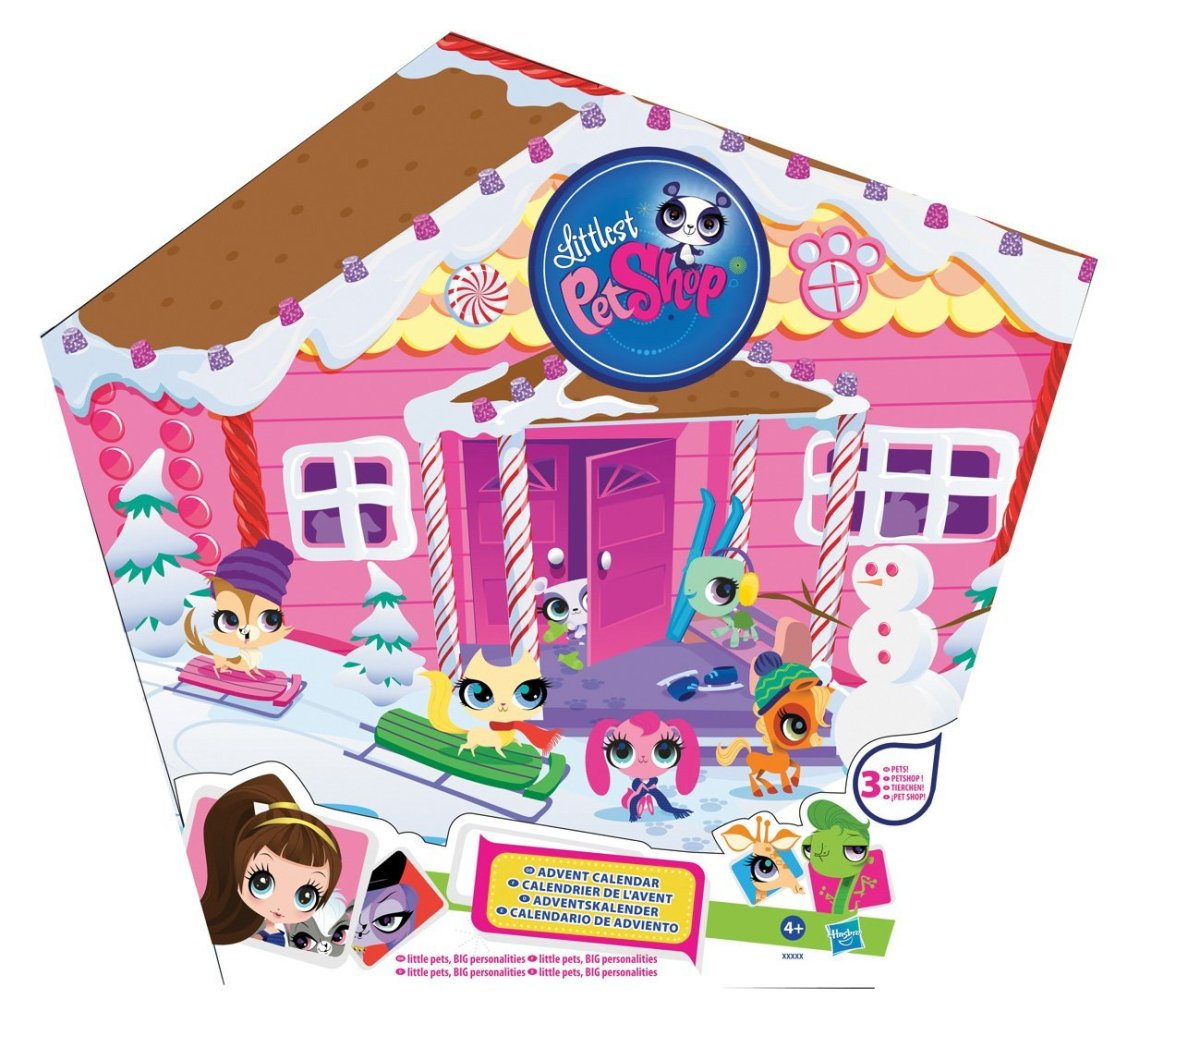 Littlest pet shop advent calendar 2019,